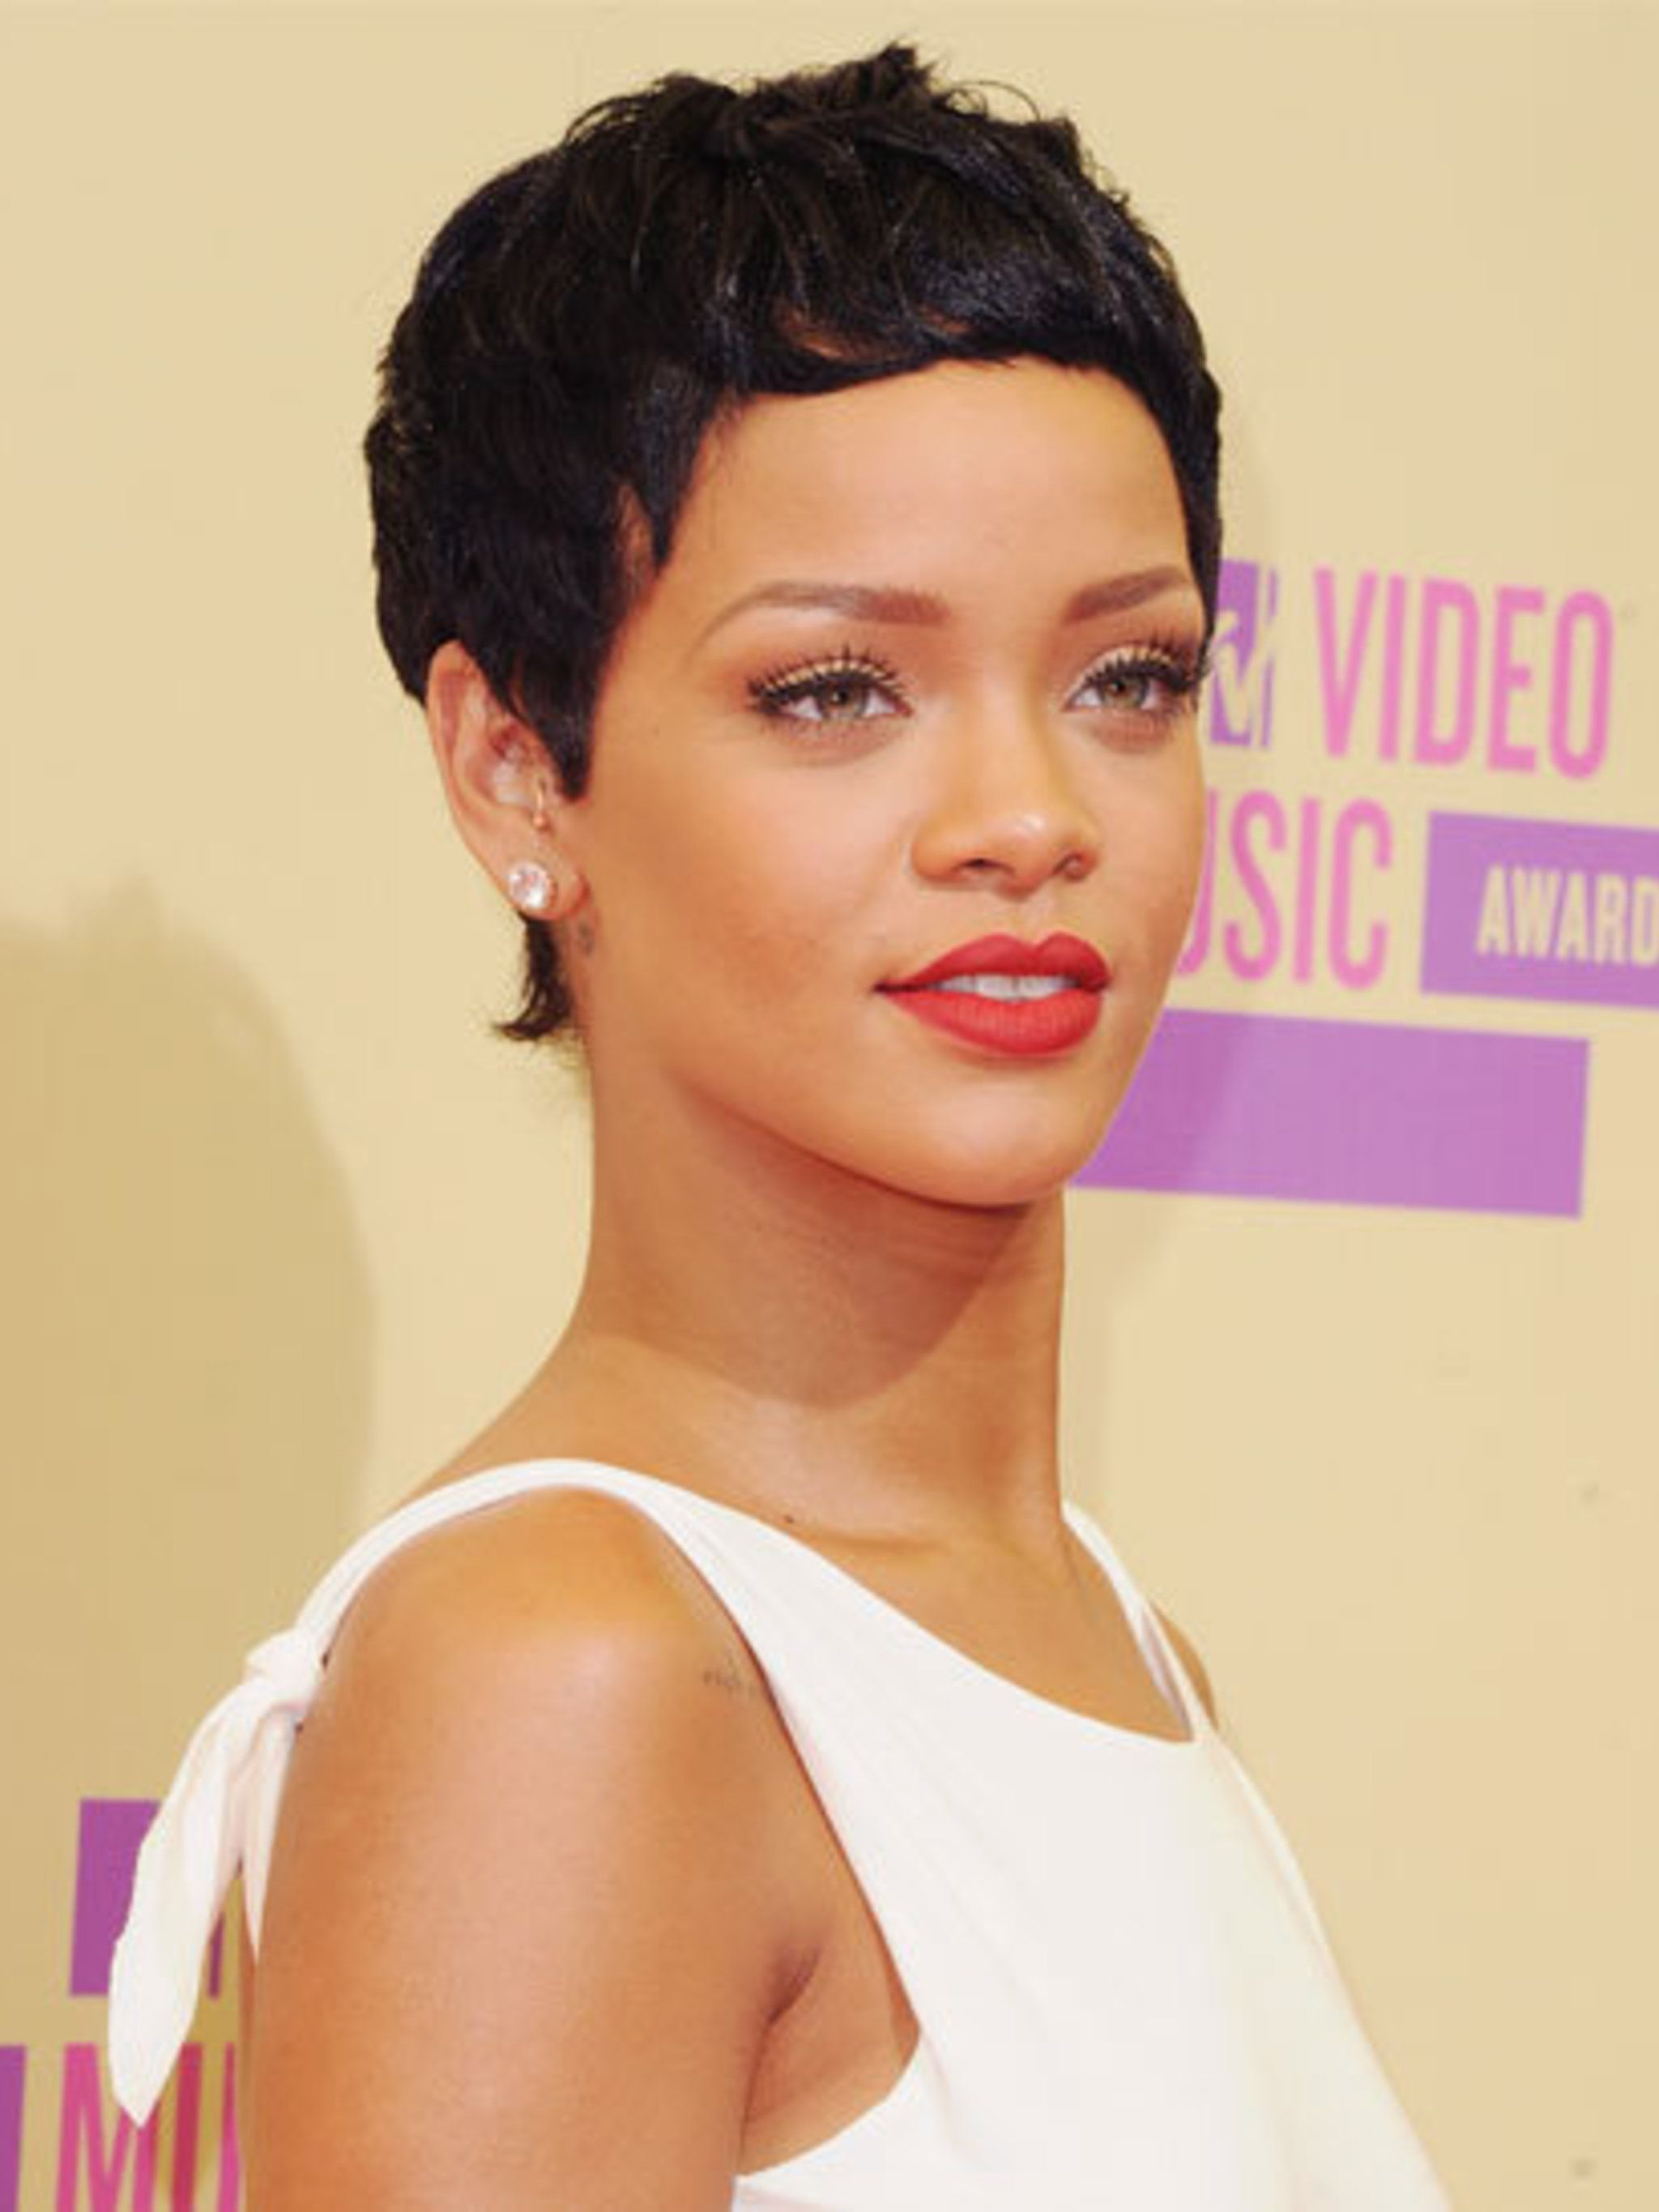 <p>Rihanna arriving on the red carpet at the MTV VMA Awards</p>